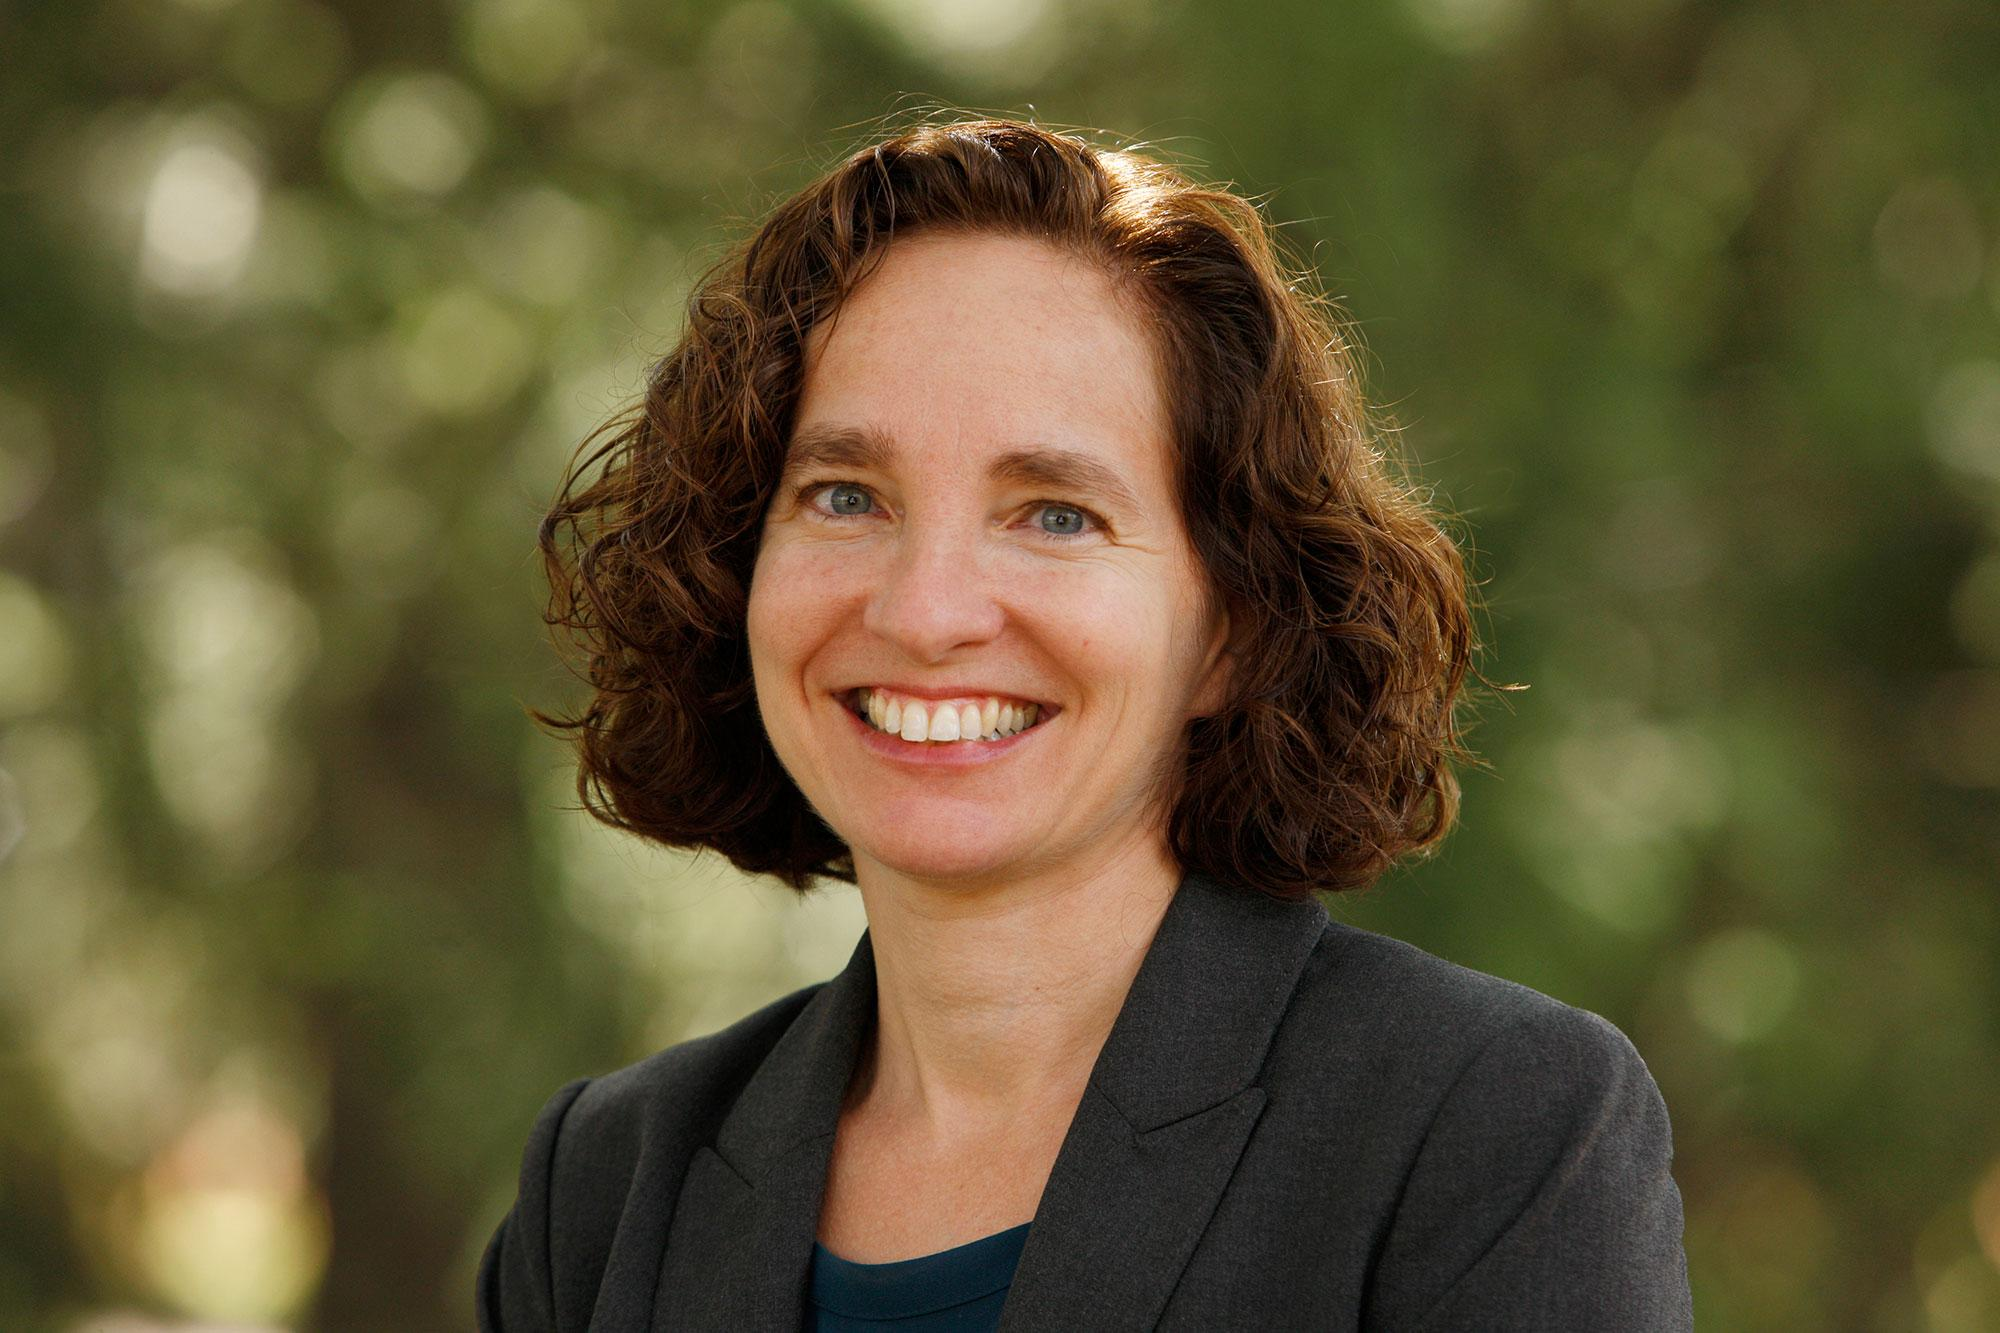 Risa Goluboff, who became dean of the School of Law on July 1, is a renowned legal historian specializing in civil rights.